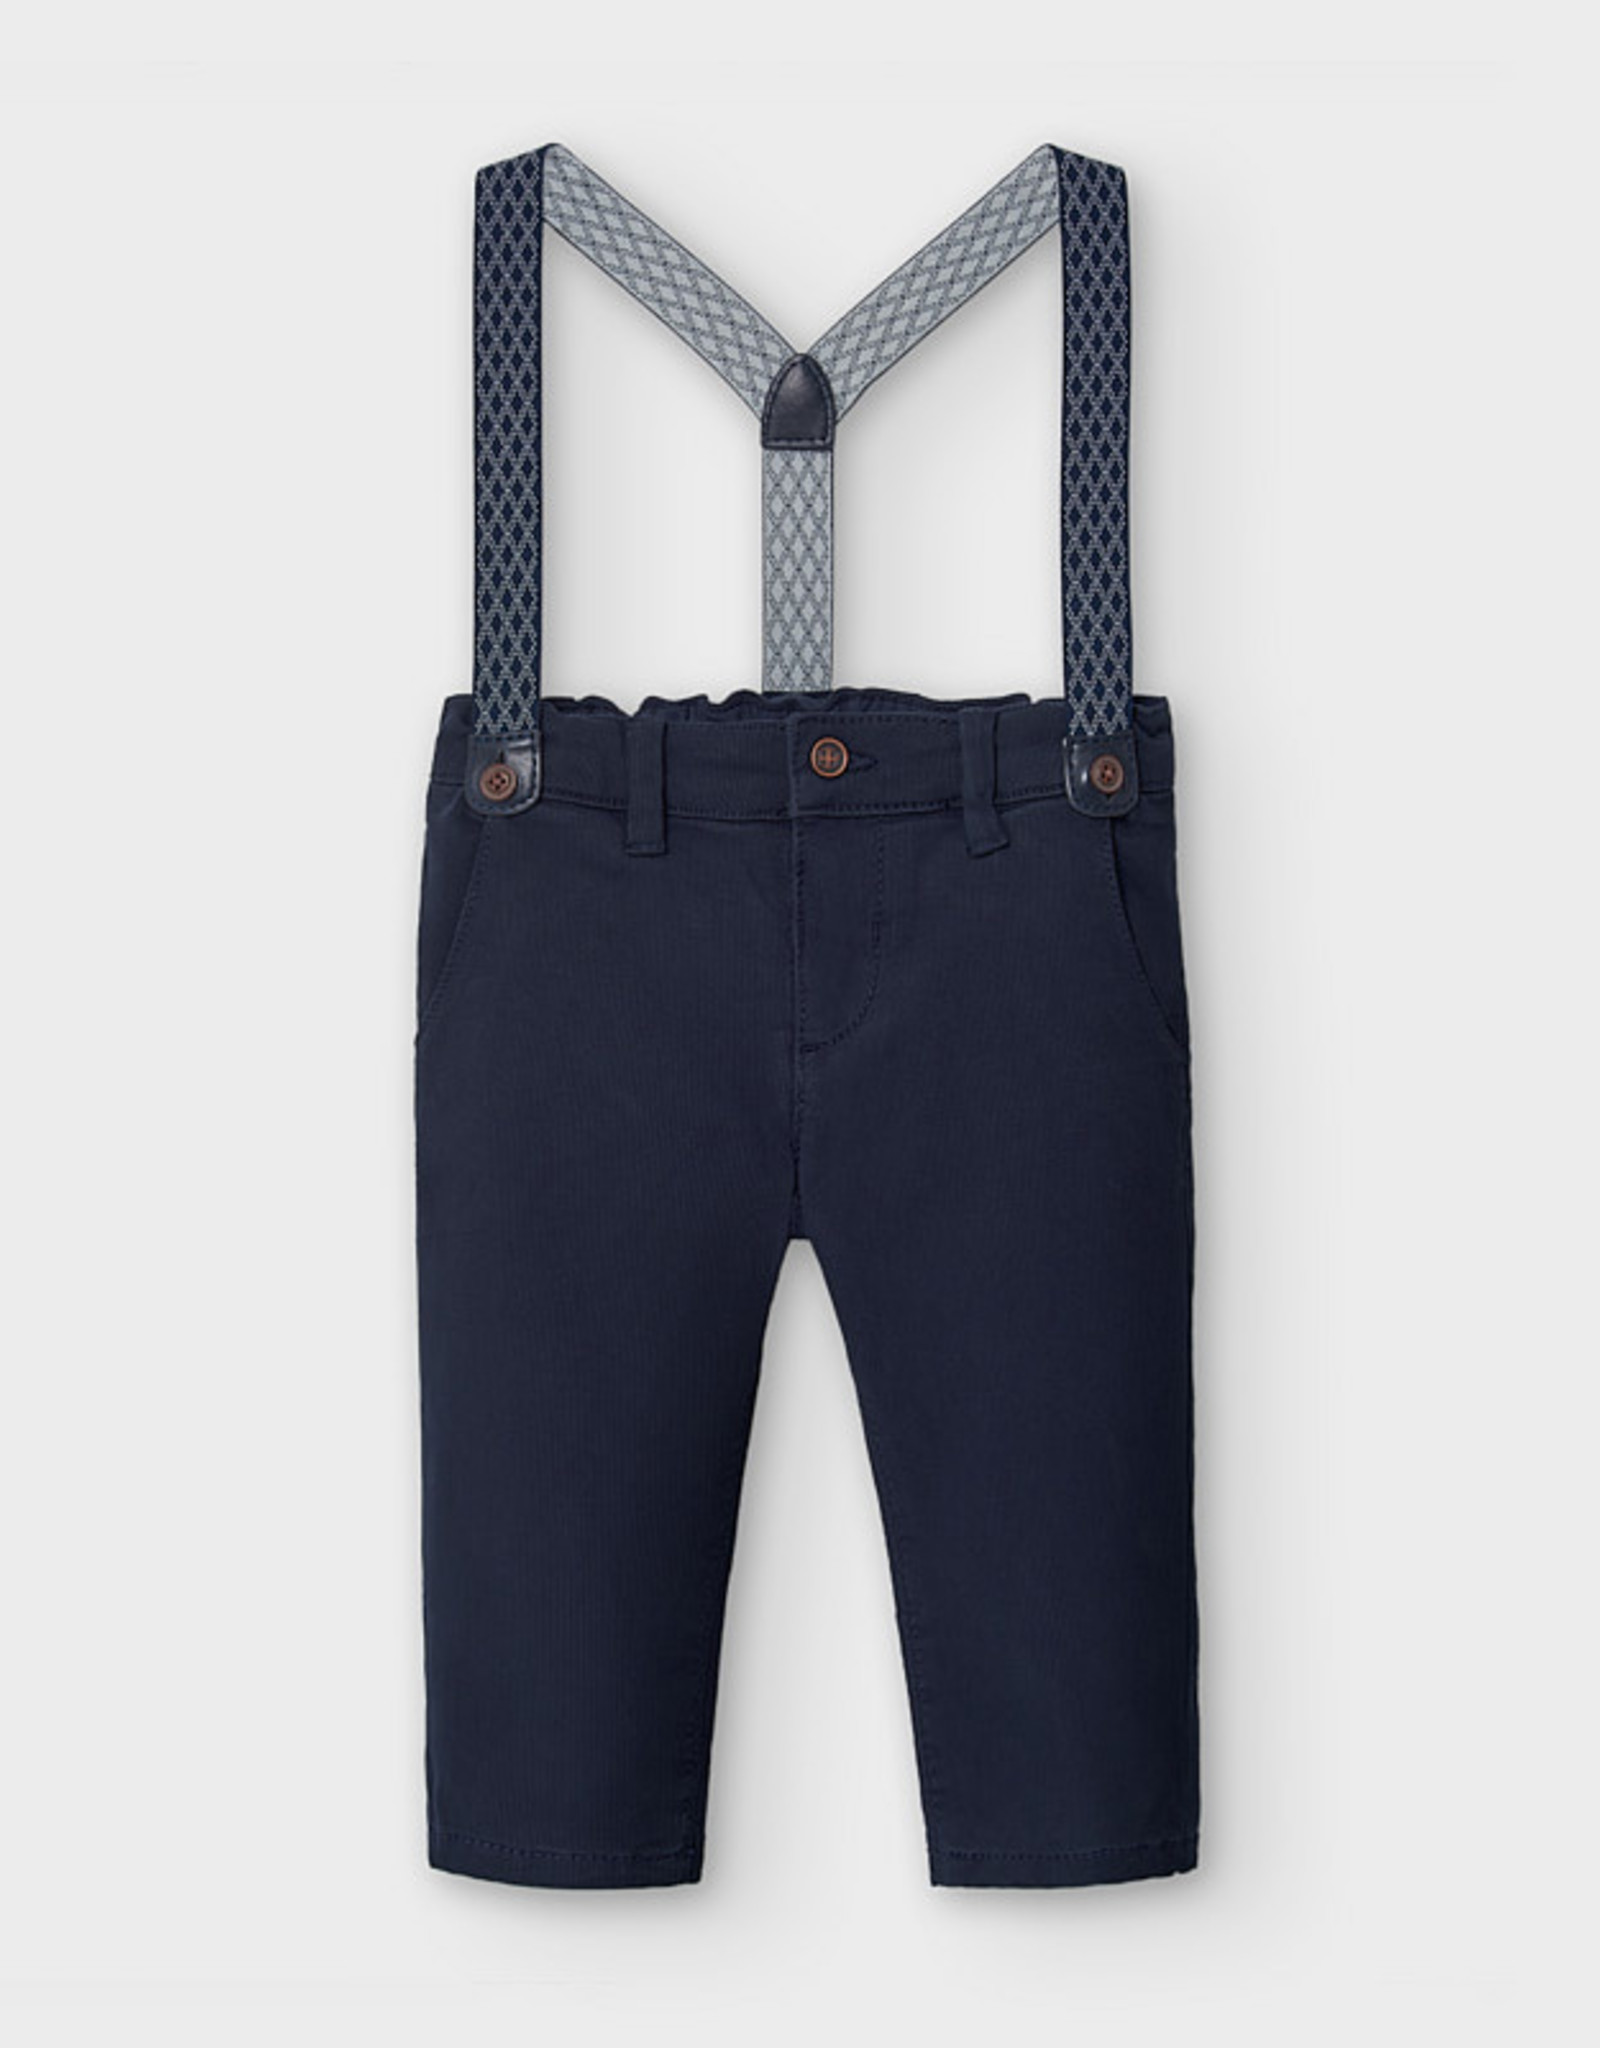 Slim Cord Navy Chino w Removable Suspenders